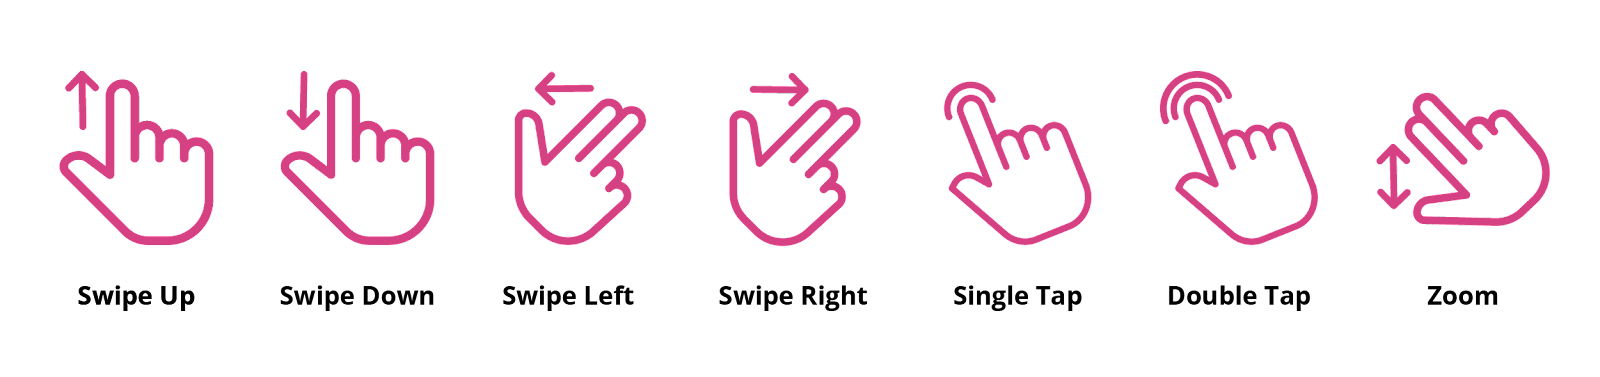 the various touch gestures on a mobile app